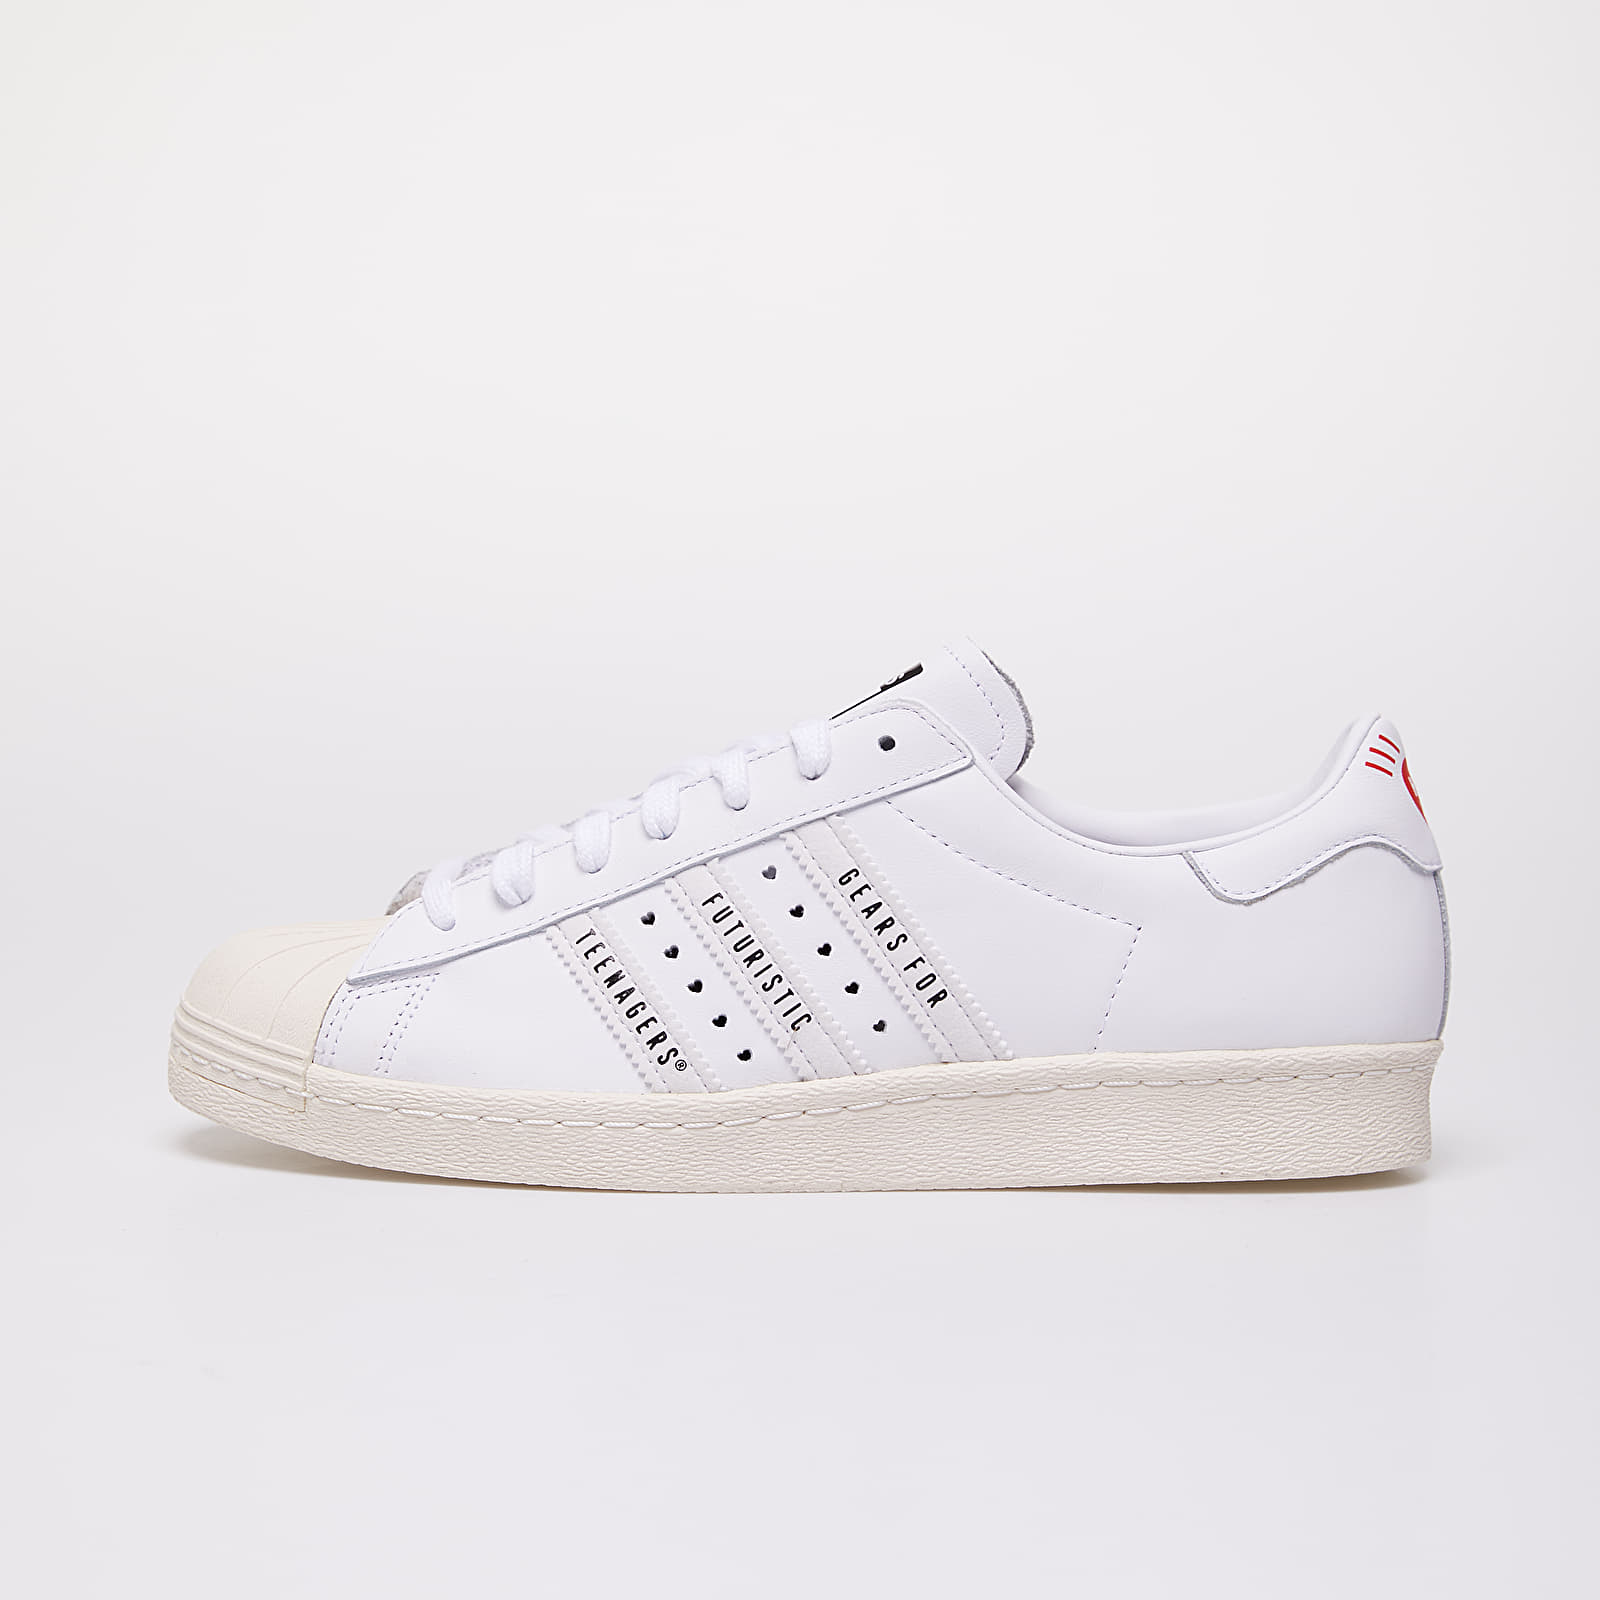 Pánské tenisky a boty adidas x Pharrell Williams Superstar 80s Human Made Core Black/ Ftwr White/ Off White